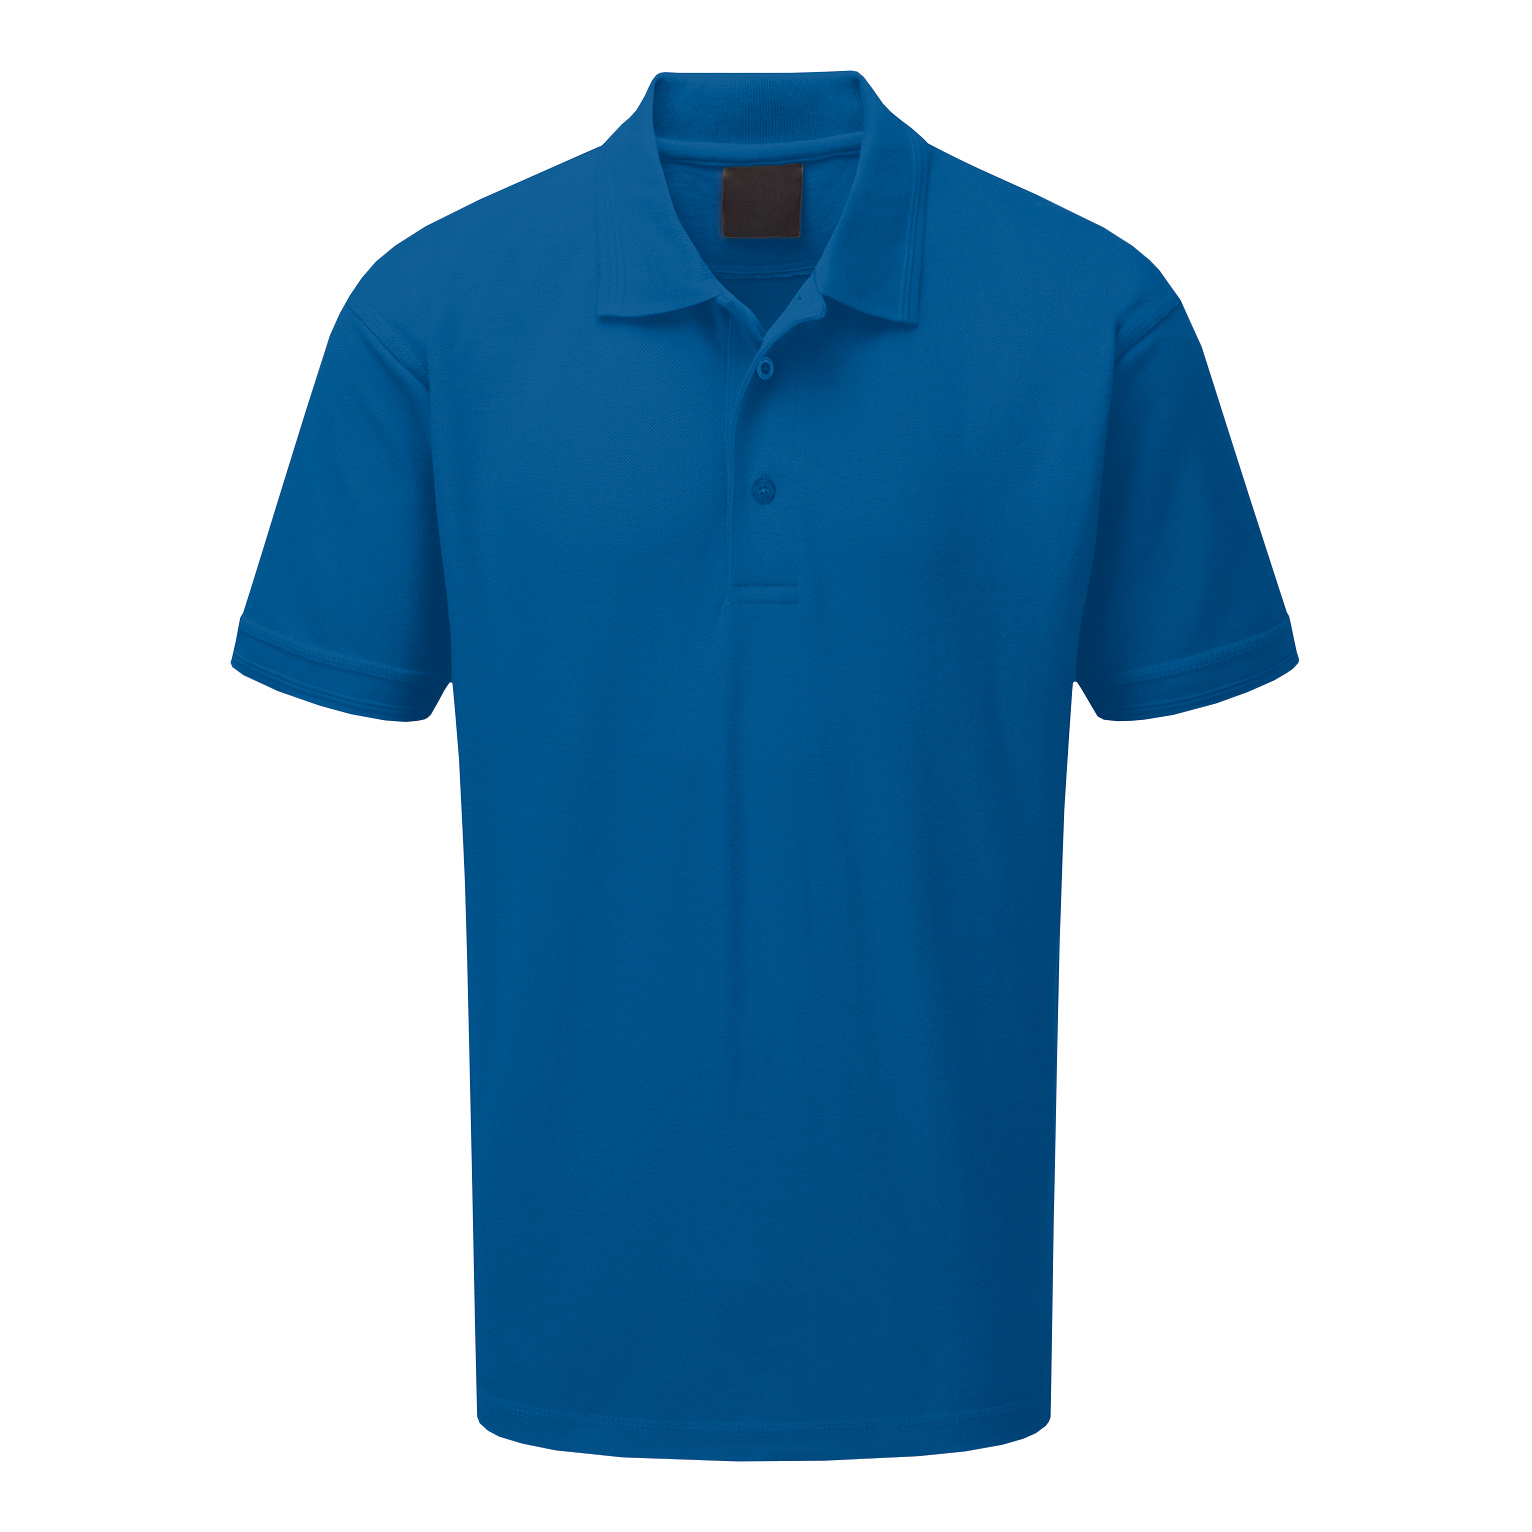 Premium Polo Shirt Triple Button 220gsm Polycotton XS Royal Blue Ref CLPKSRXS  *Approx 3 Day Leadtime*